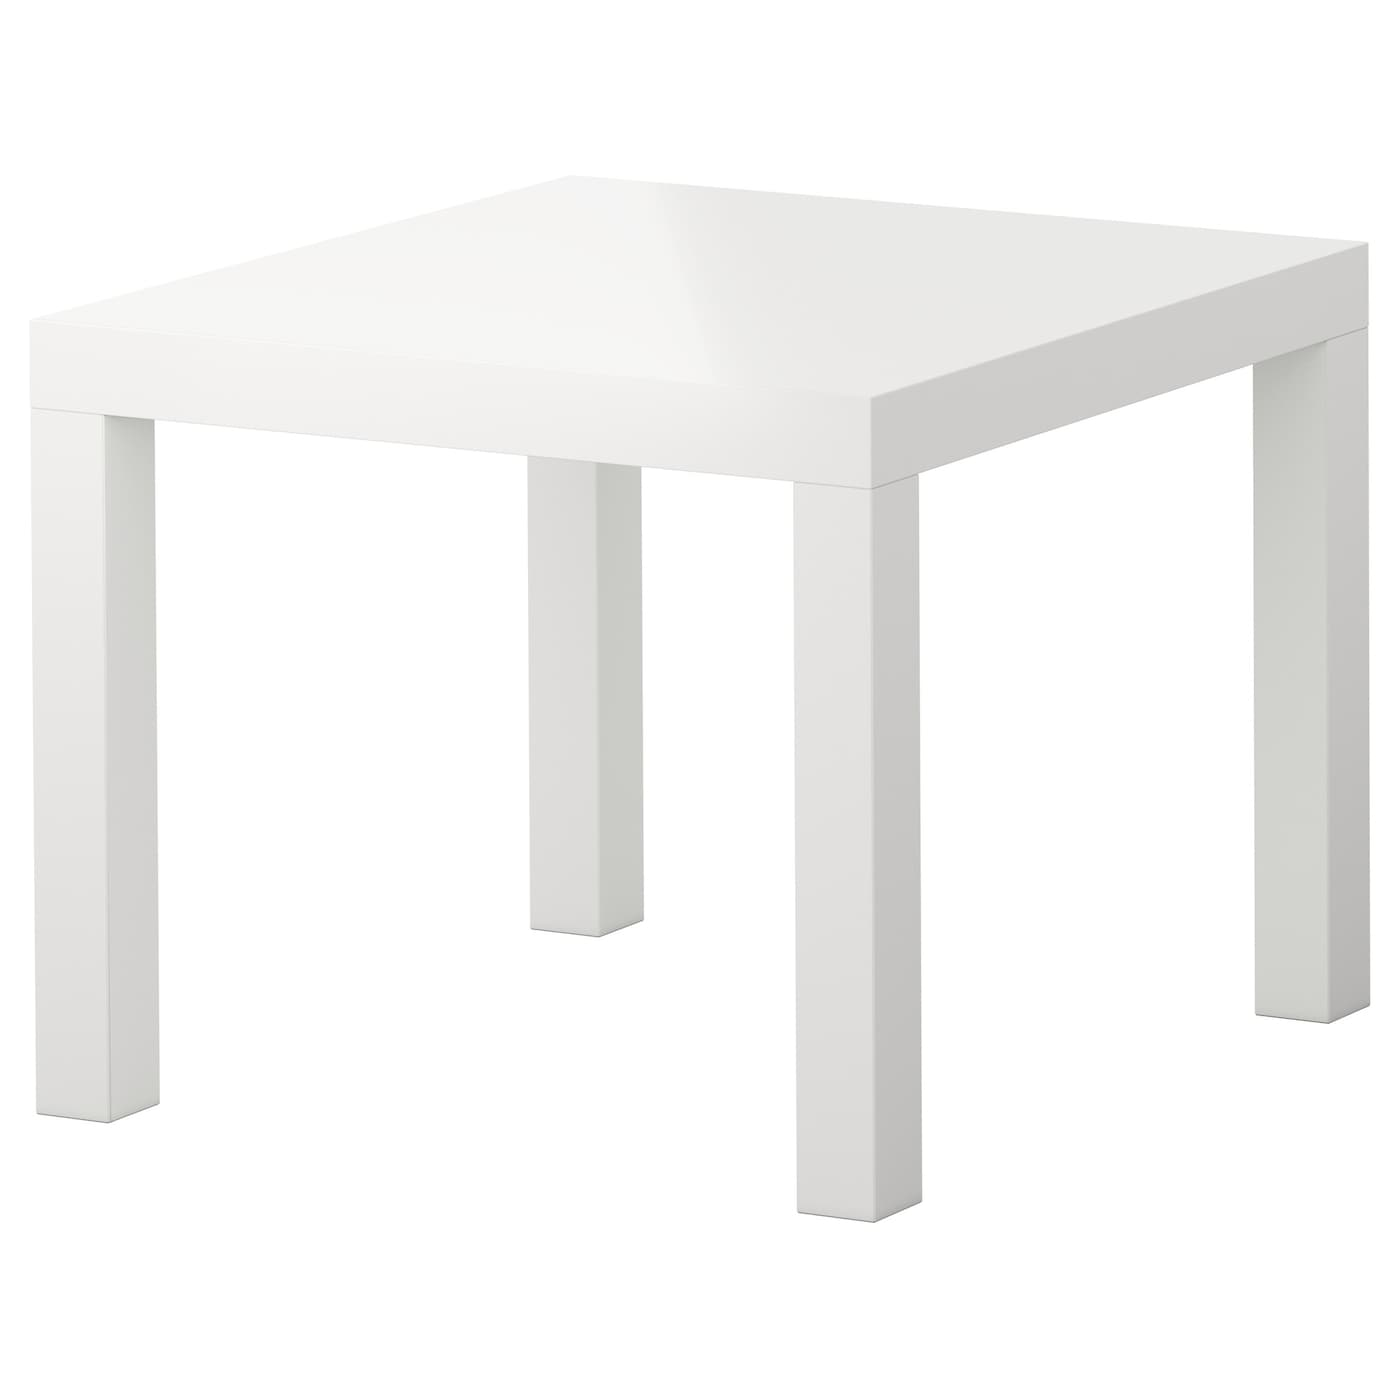 lack side table high gloss white 55x55 cm ikea. Black Bedroom Furniture Sets. Home Design Ideas